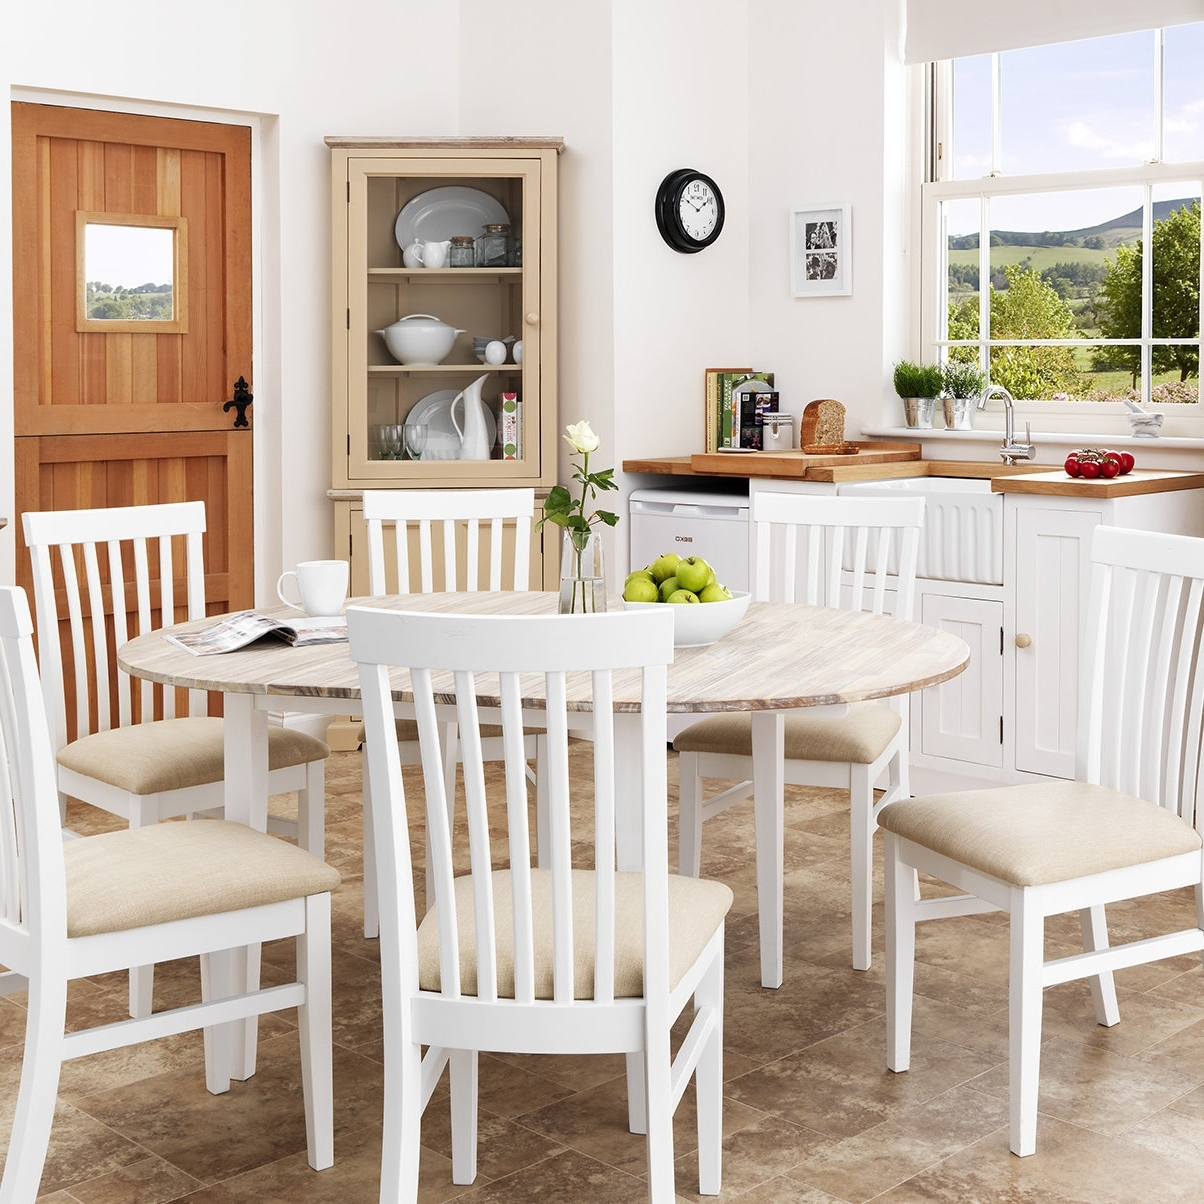 Most Recently Released Breakwater Bay Chatham Extendable Dining Table And 6 Chairs Inside Extendable Dining Tables 6 Chairs (View 18 of 25)